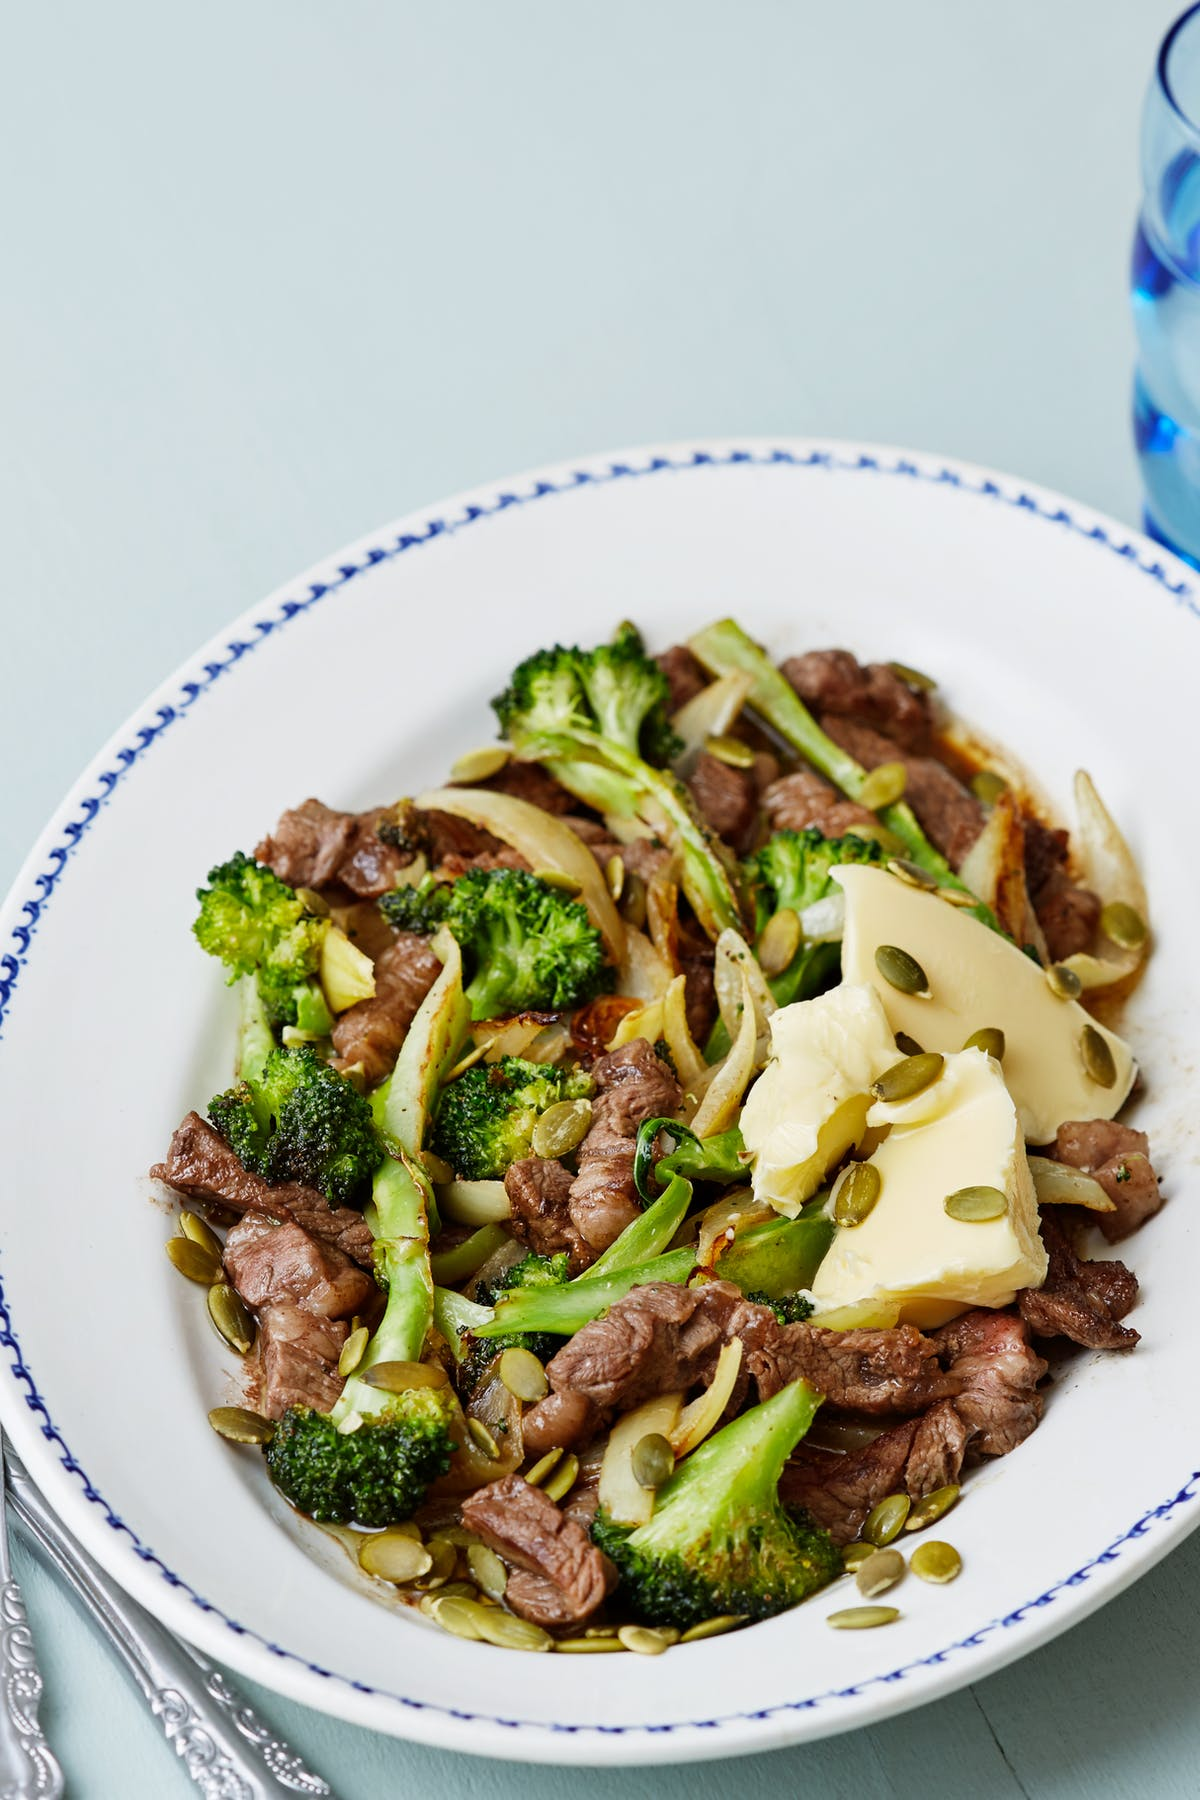 Steak and broccoli stir-fry with toasted pumpkin seeds